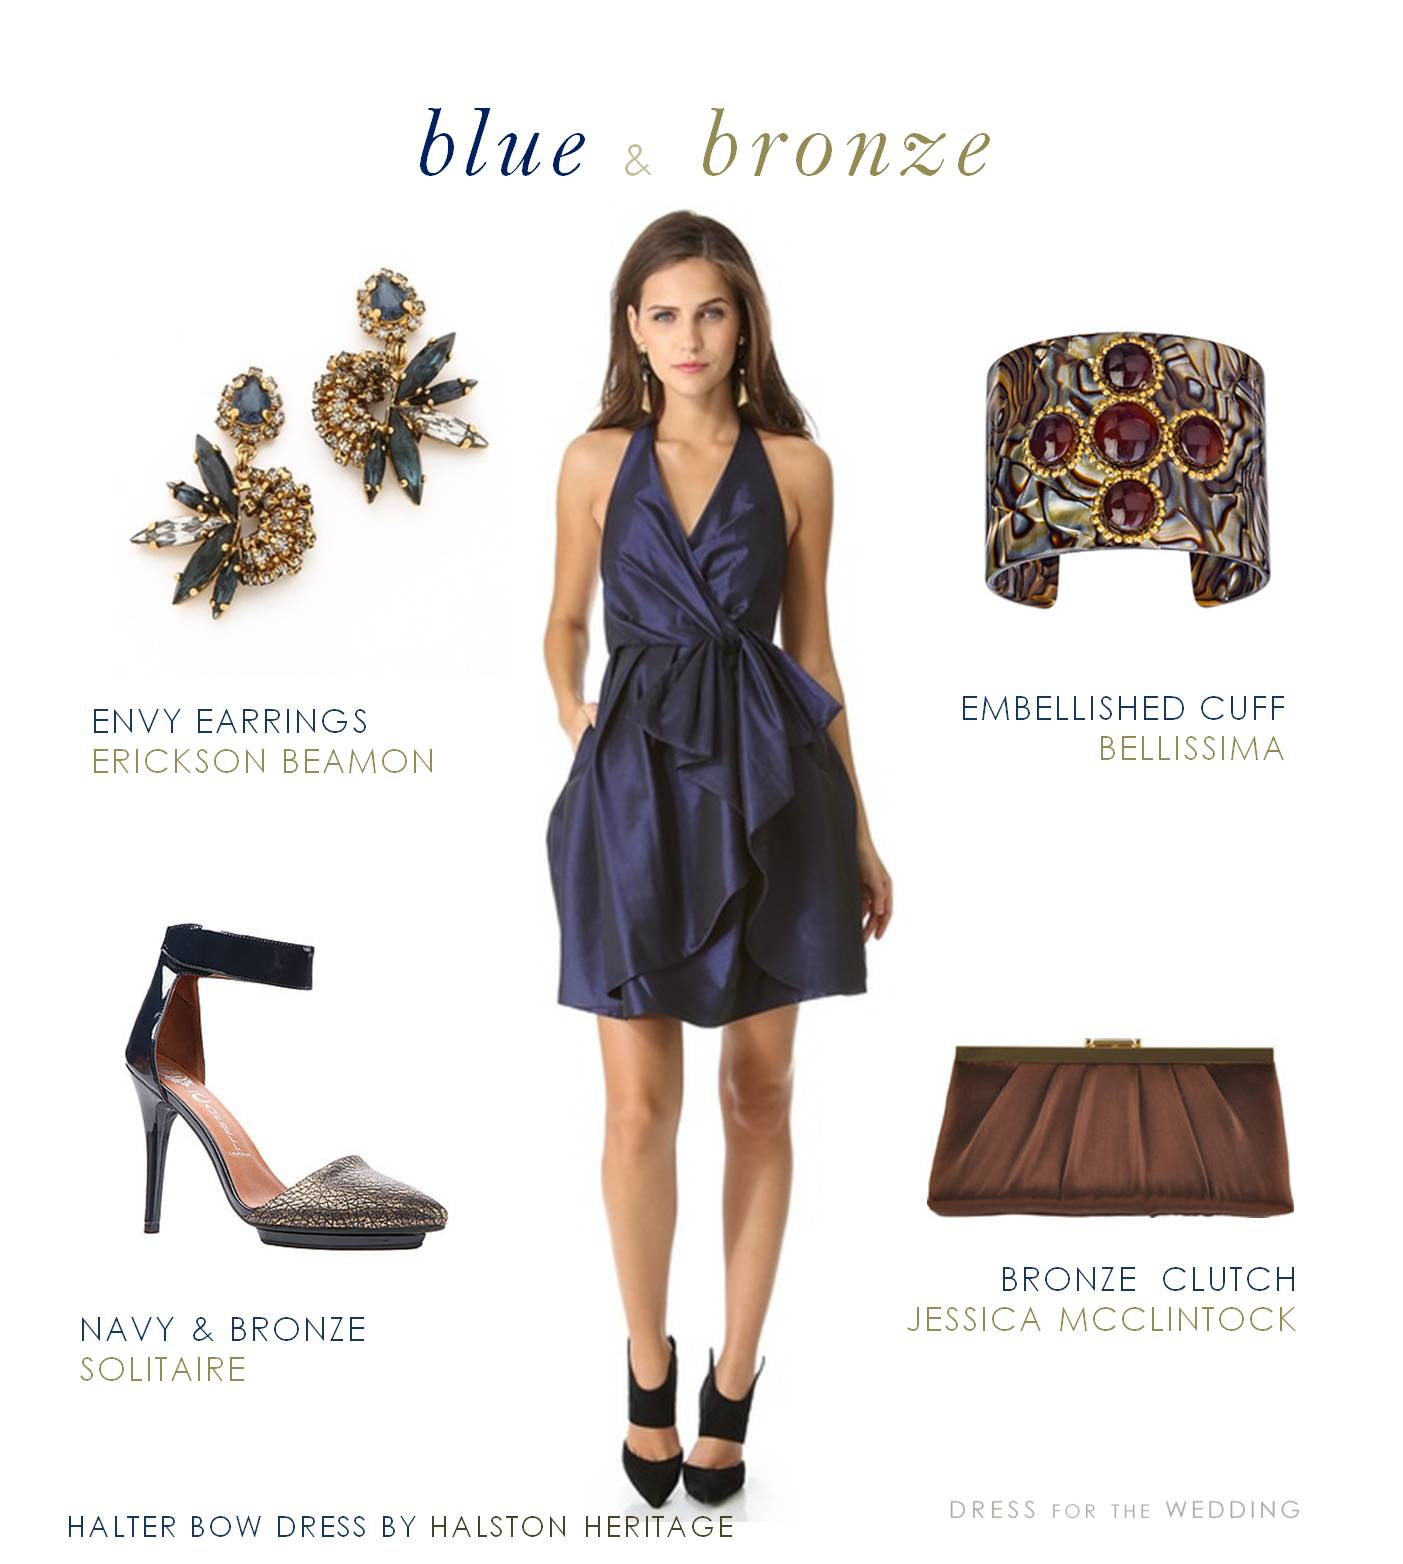 Black dress to wear to a wedding - Navy Blue And Bronze Dress For A Wedding